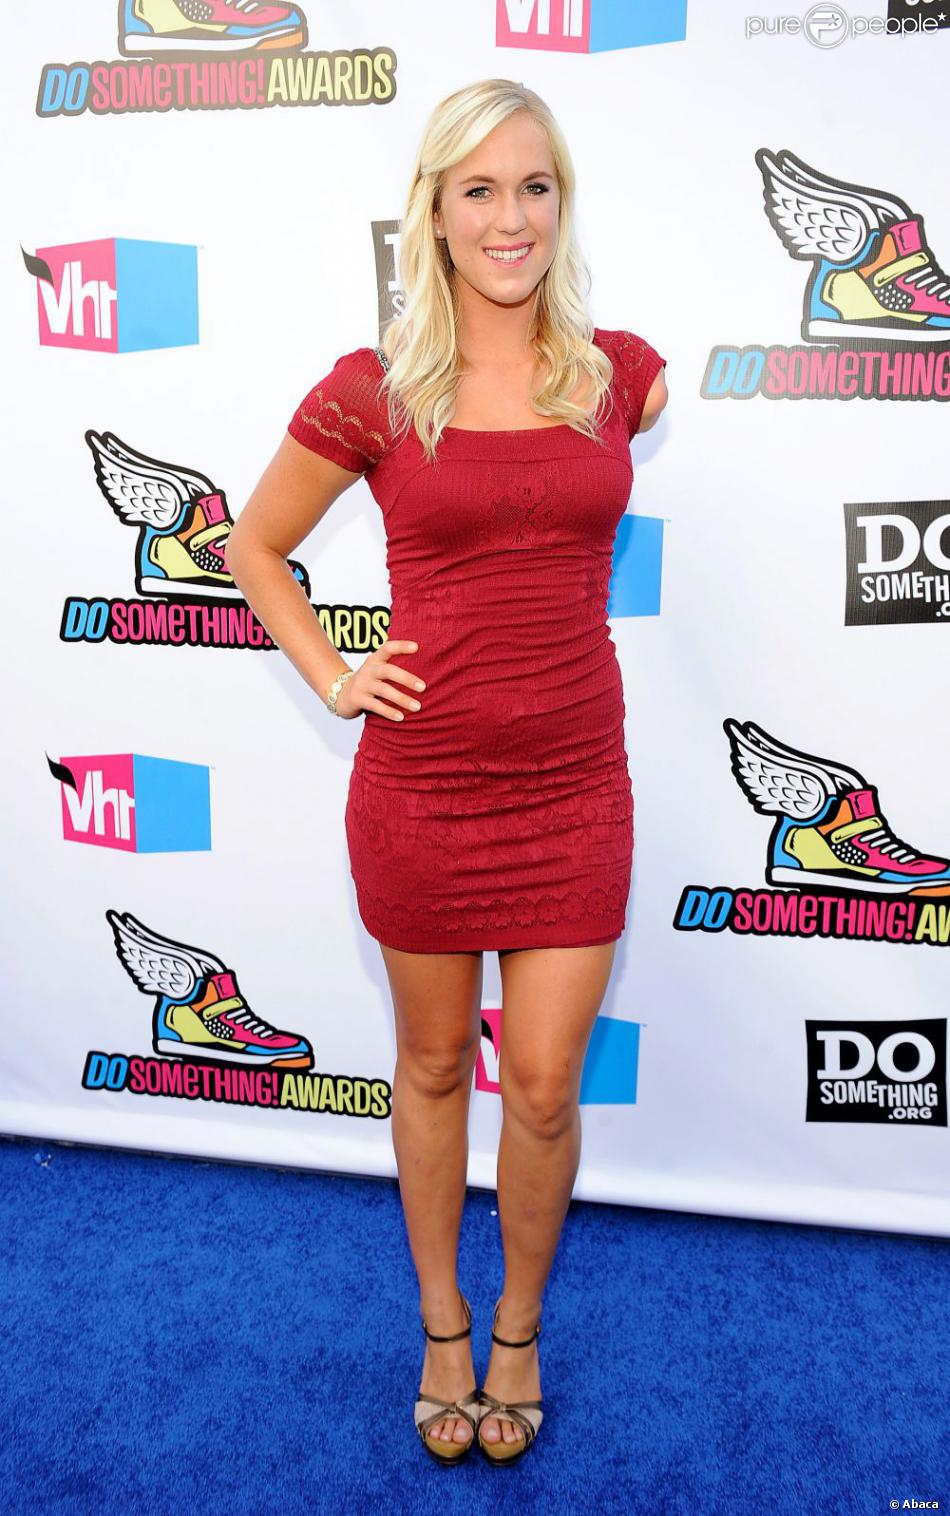 http://static1.purepeople.com/articles/9/12/04/19/@/1120745-bethany-hamilton-arrives-at-the-2011-do-950x0-2.jpg